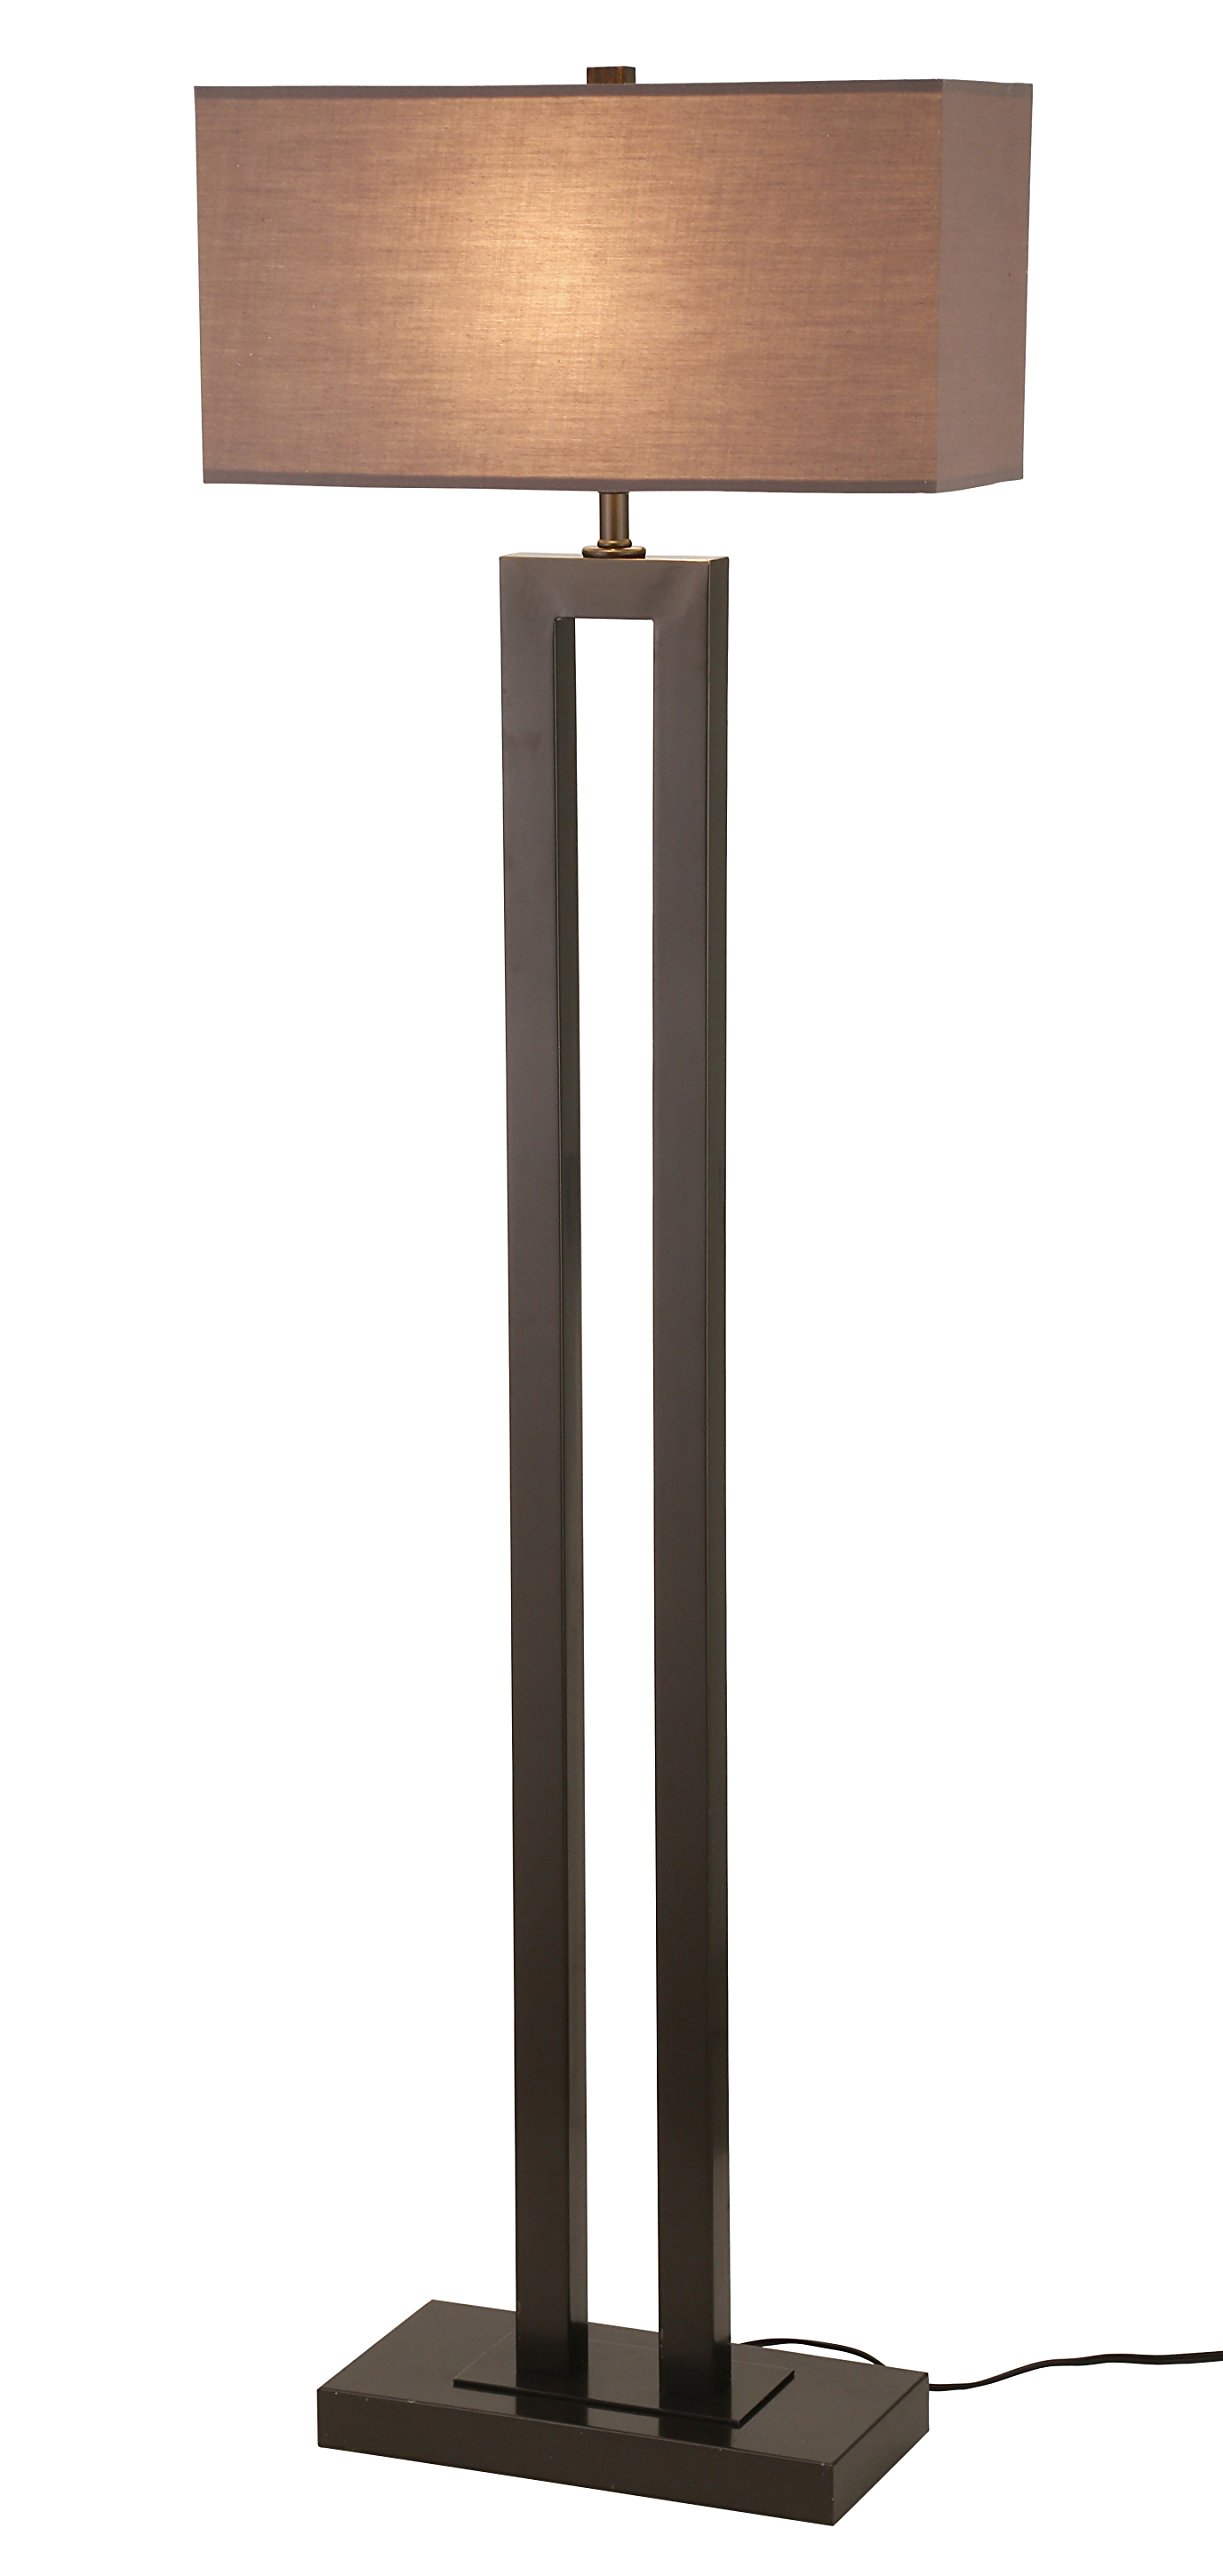 Stone & Beam Modern Metal Floor Lamp, 59.5''H, With Bulb, Earth Tone Shade by Stone & Beam